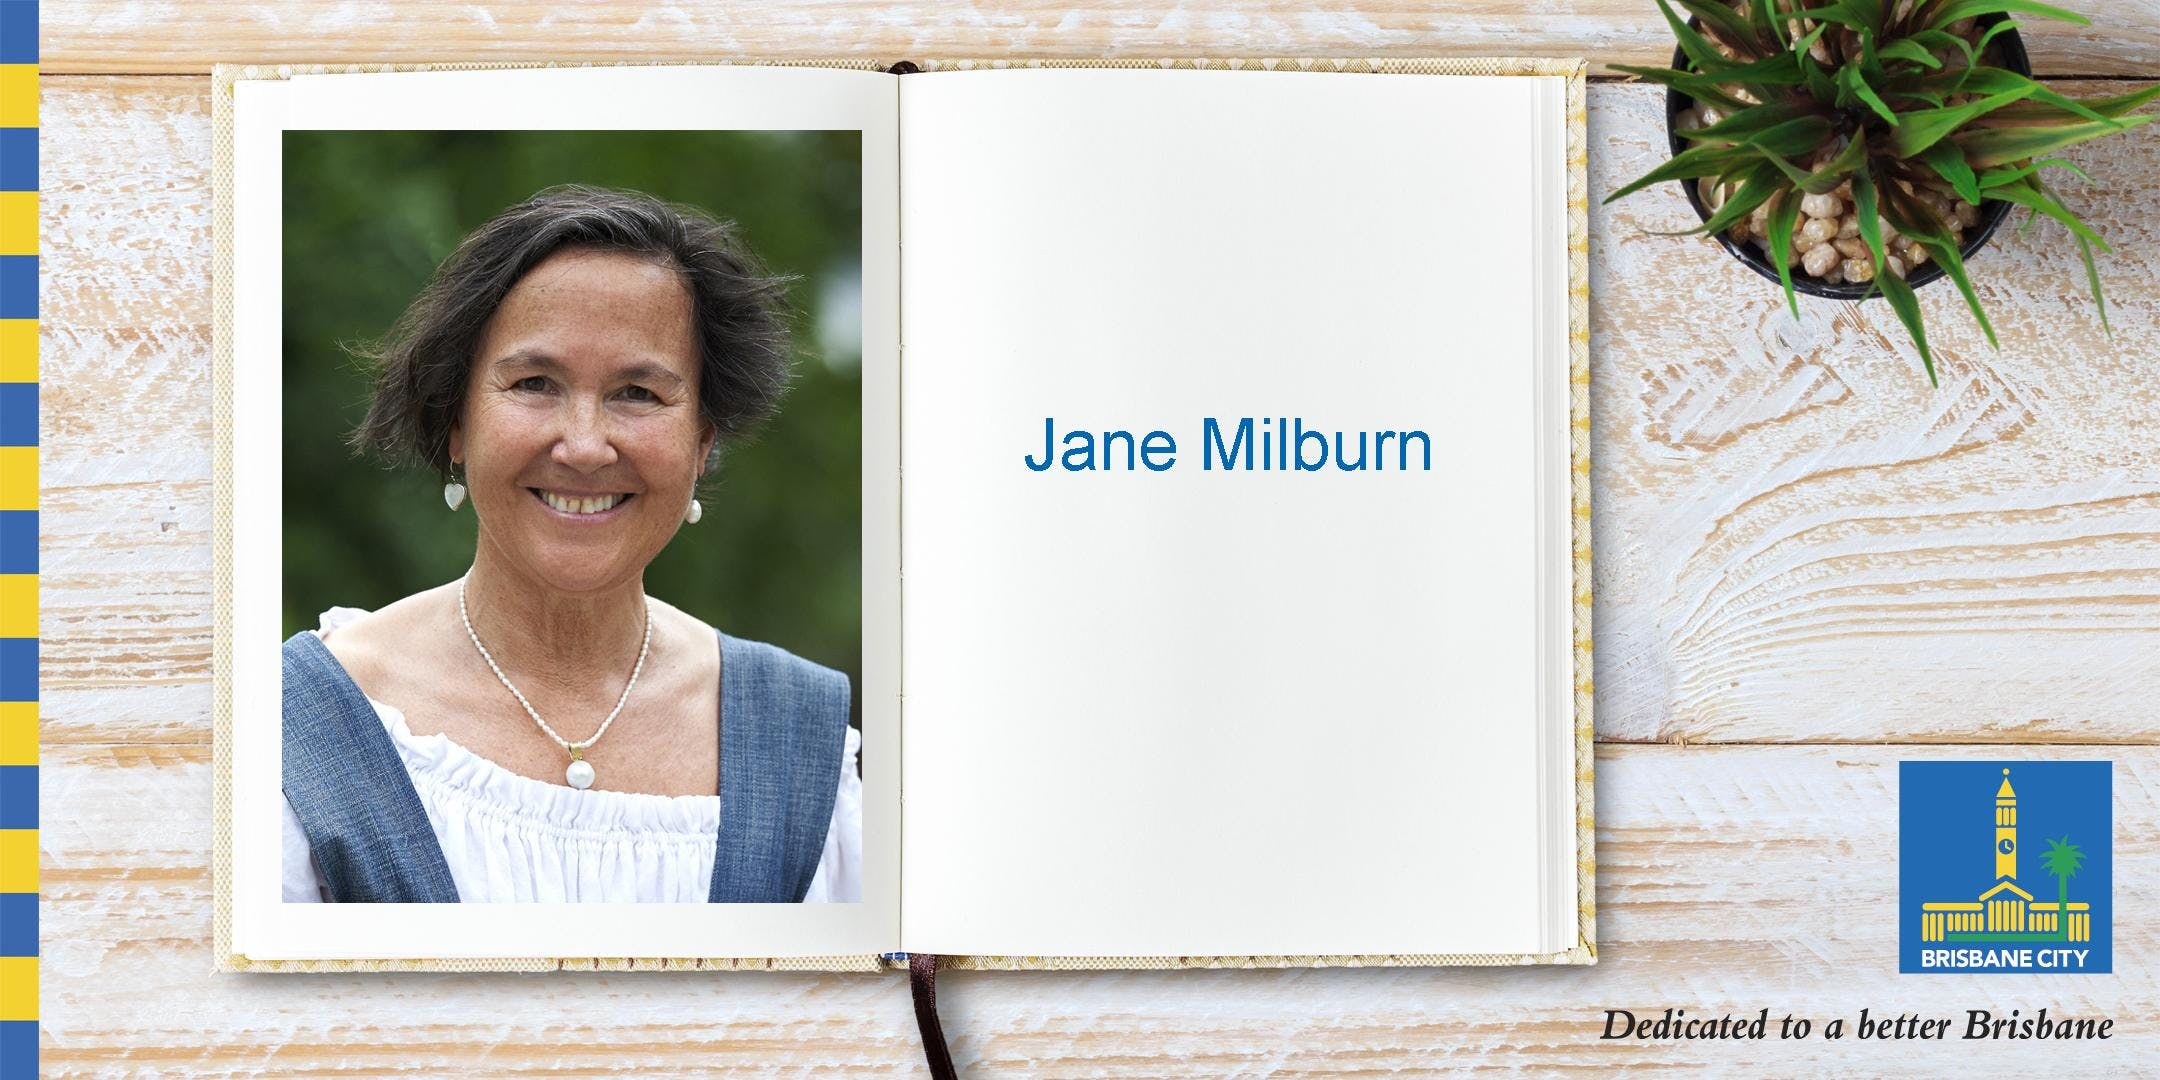 Author talk: Meet Jane Milburn - Toowong Libr